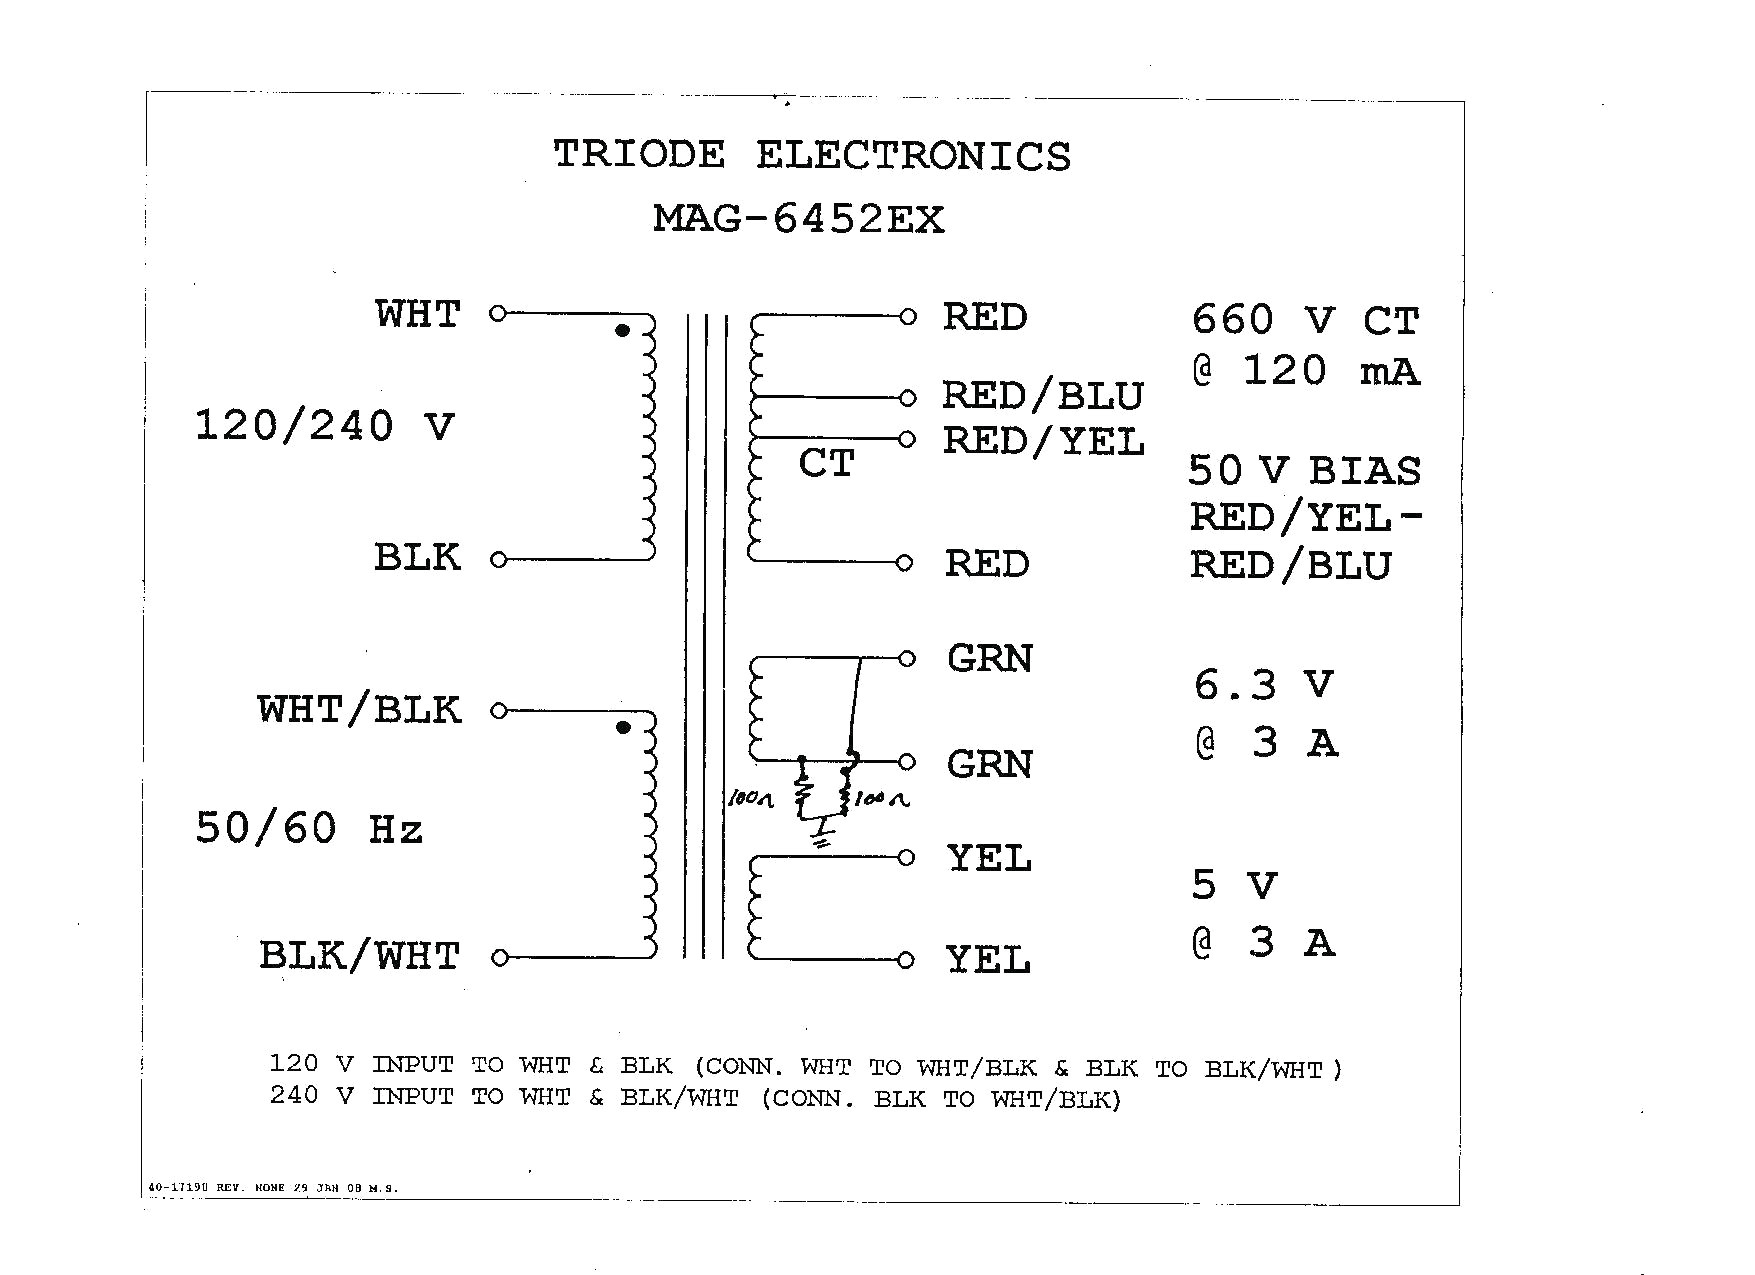 control transformer wiring diagram Collection-480v To 120v Transformer Wiring Diagram Lovely Control Perfect With 4-p